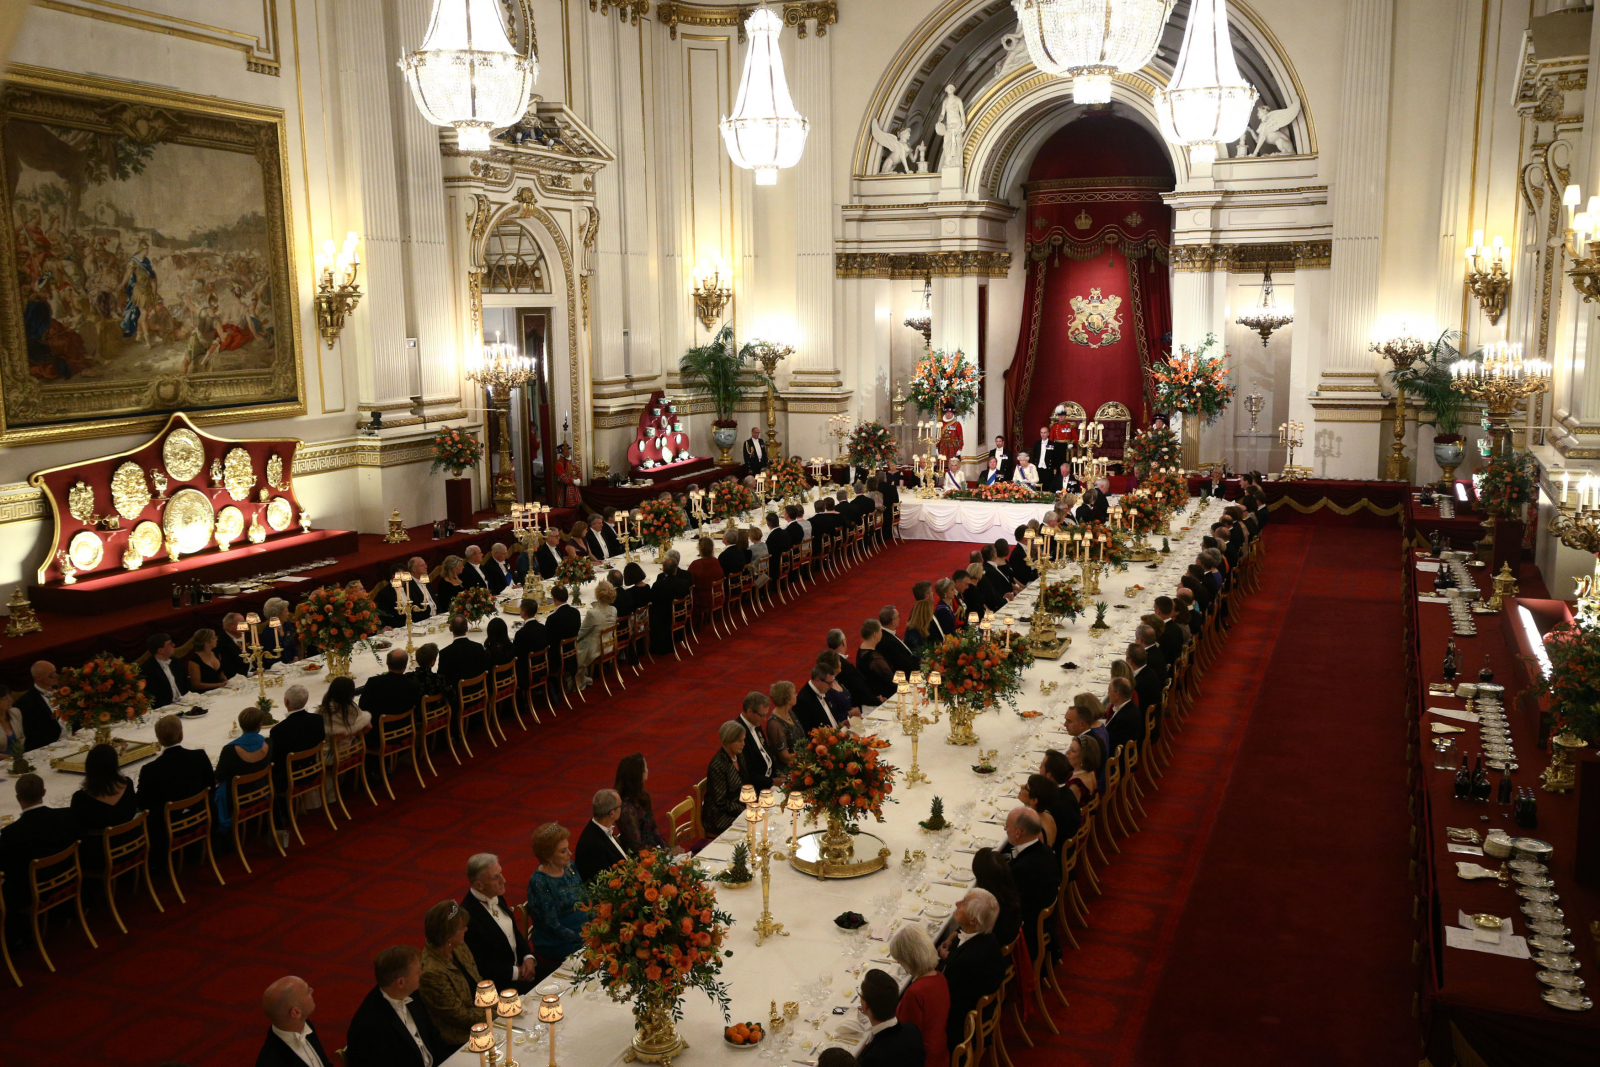 hight resolution of donald trump buckingham palace banquet queen elizabeth ii puts on lavish spread for her american guest